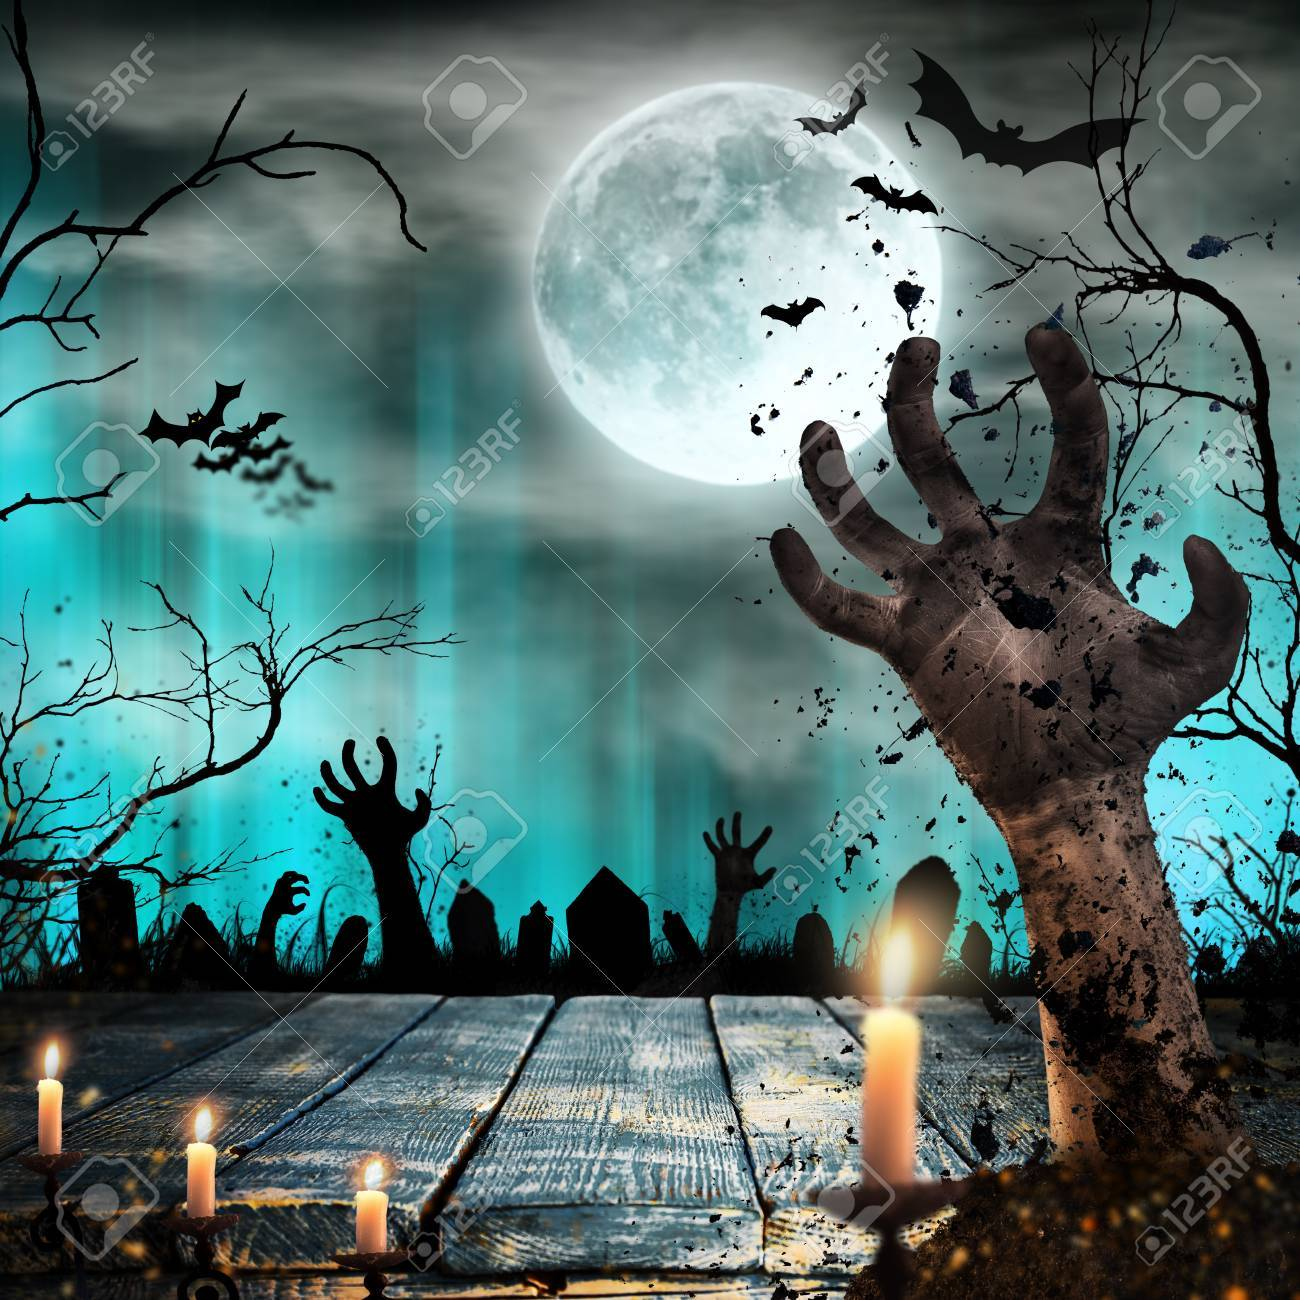 1300x1300 - Scary Halloween Background 1